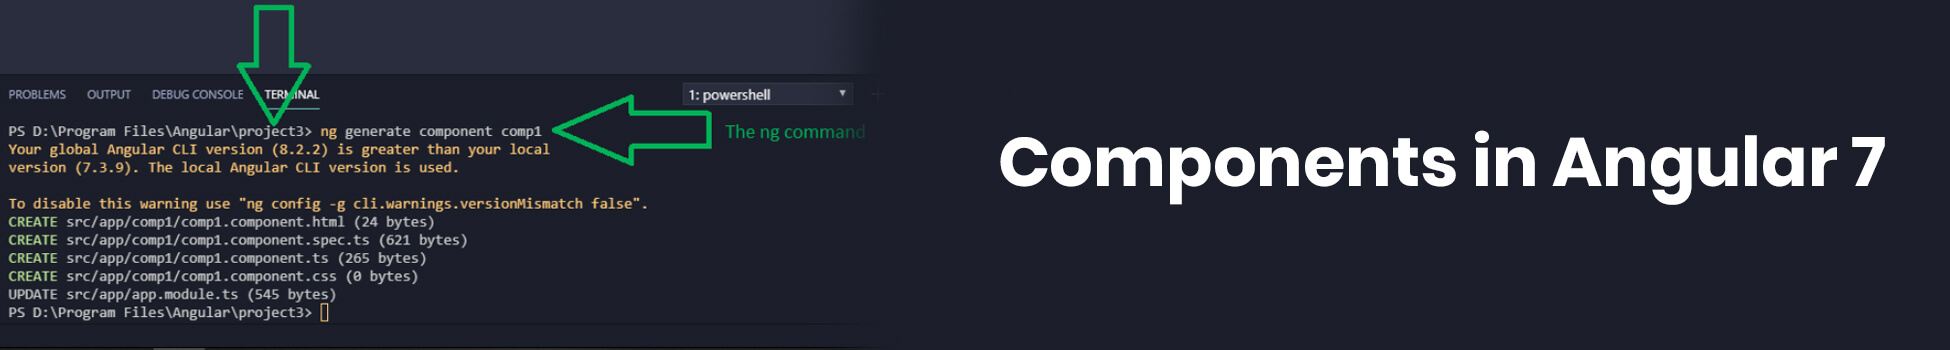 Components in Angular 7